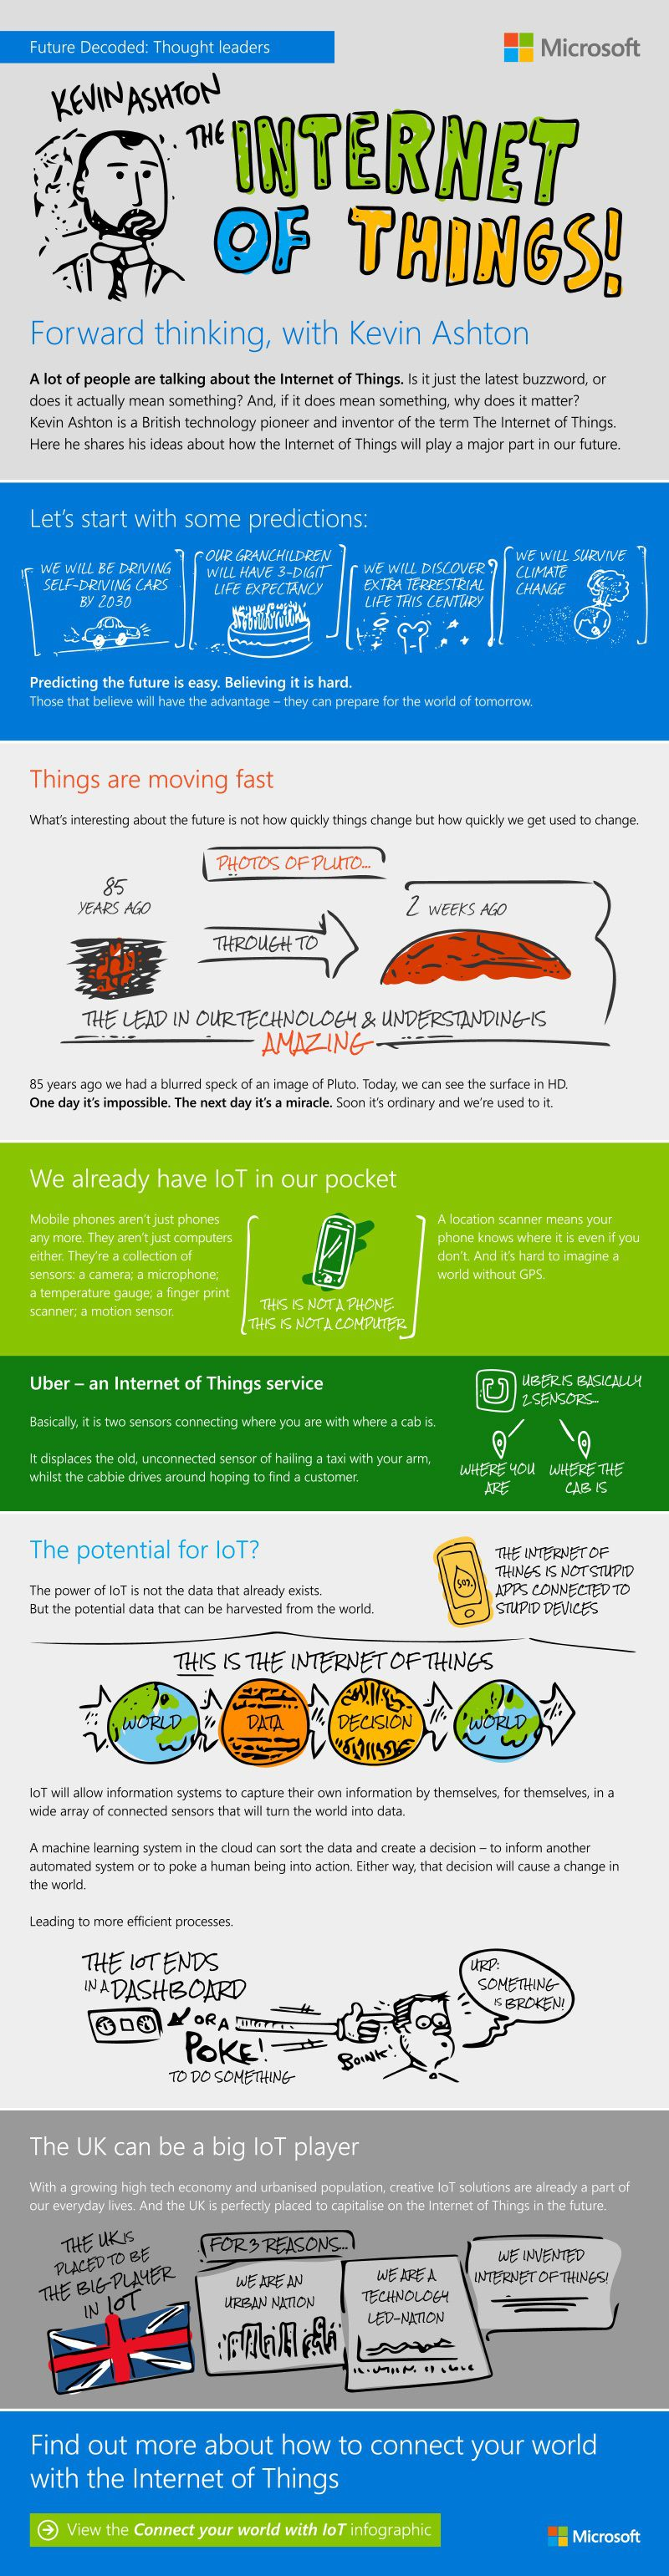 How the internet of things leads to more efficient processes